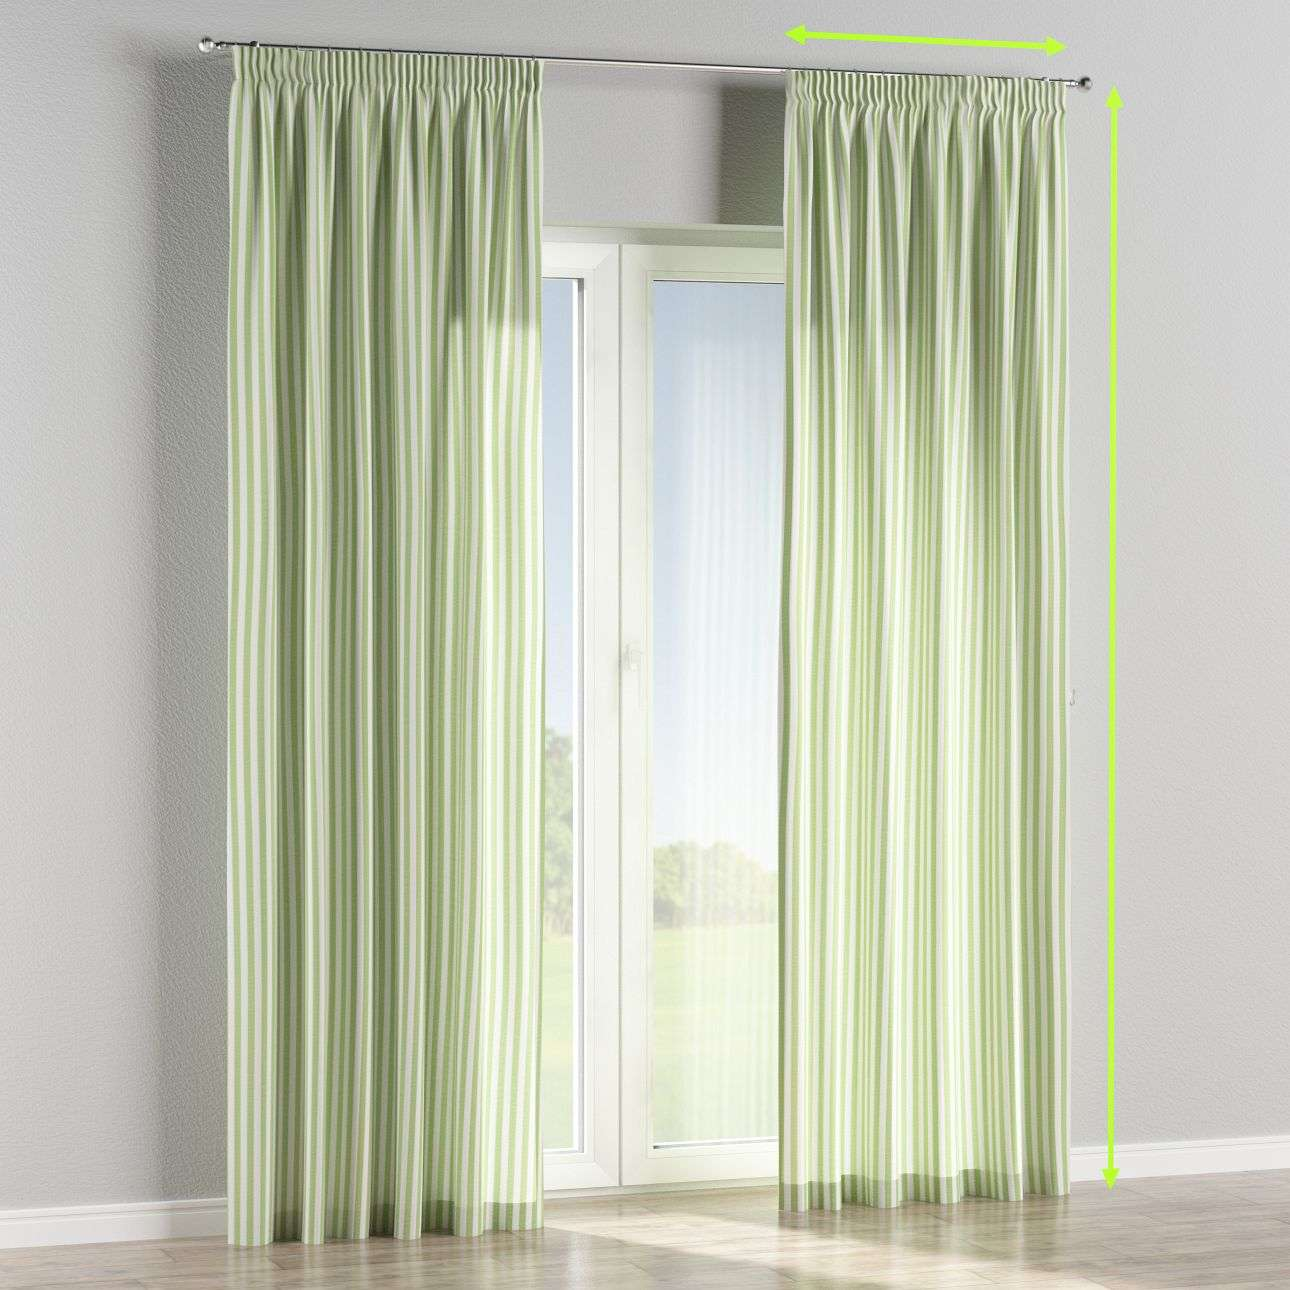 Pencil pleat curtains in collection Quadro, fabric: 136-35